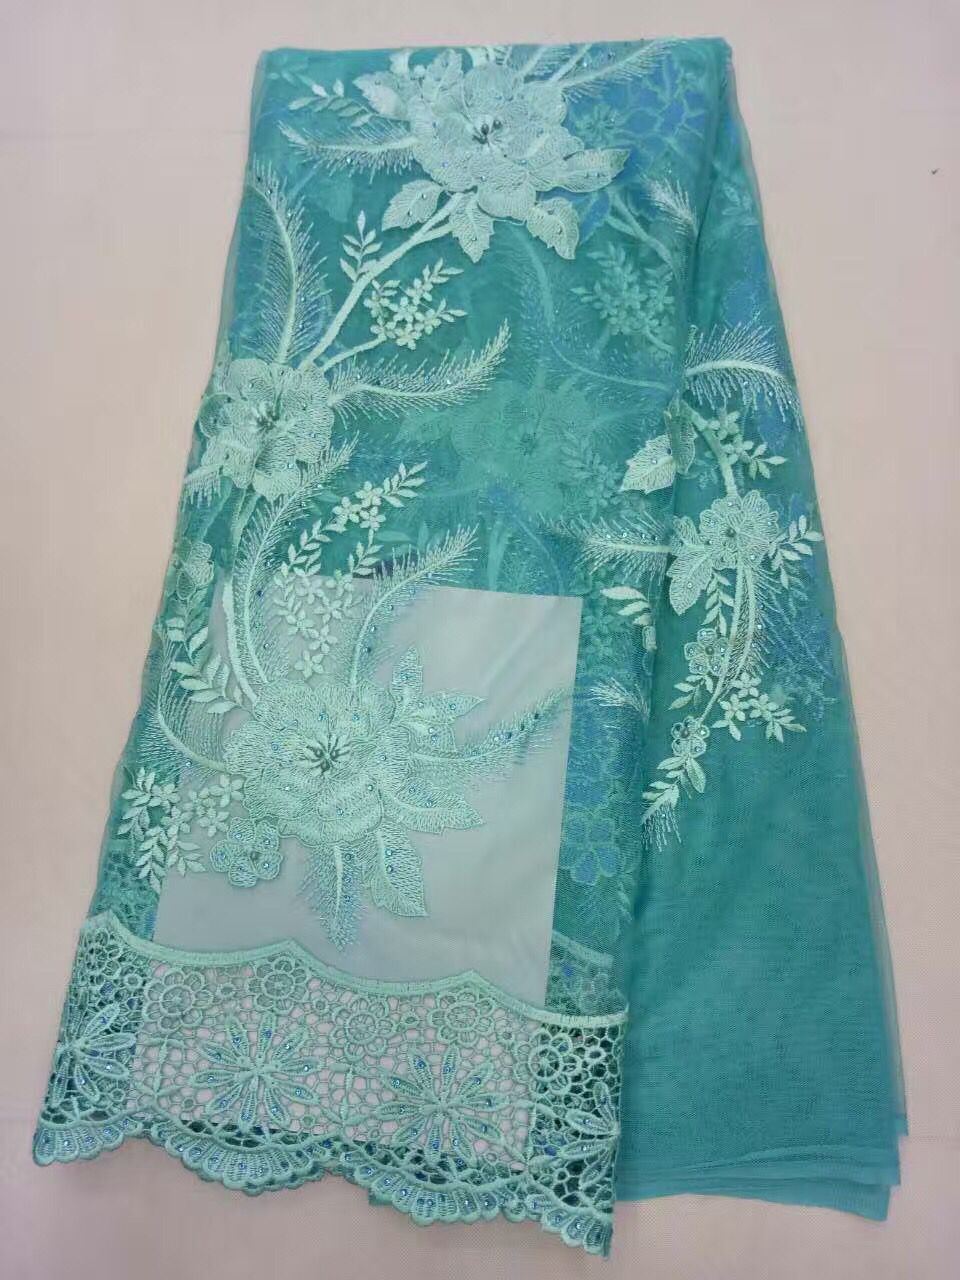 Fashion fabric textiles/ tulle lace net lace /wholesale embroidery african lace fabrics stone for wedding dress Teal green (JL